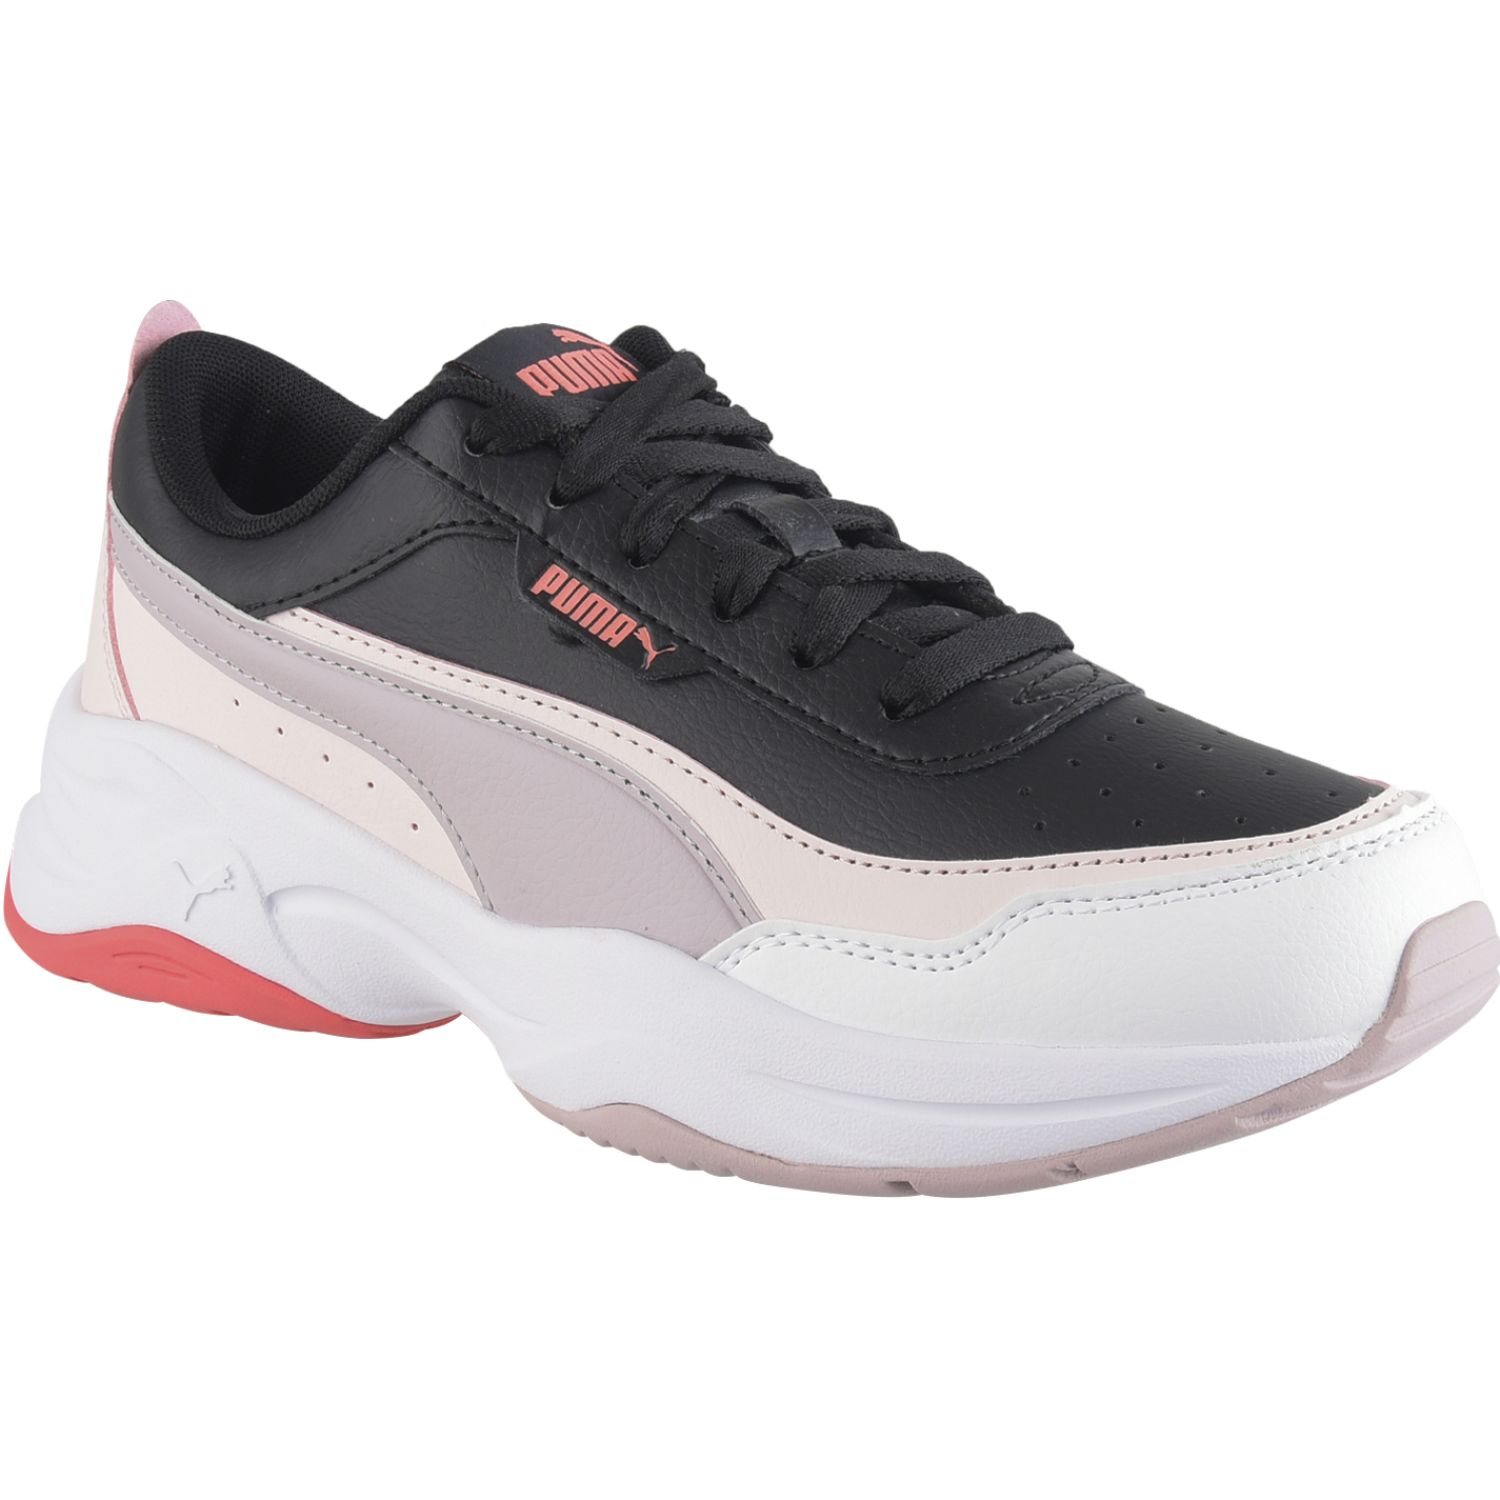 Puma cilia mode Negro / rosado Walking